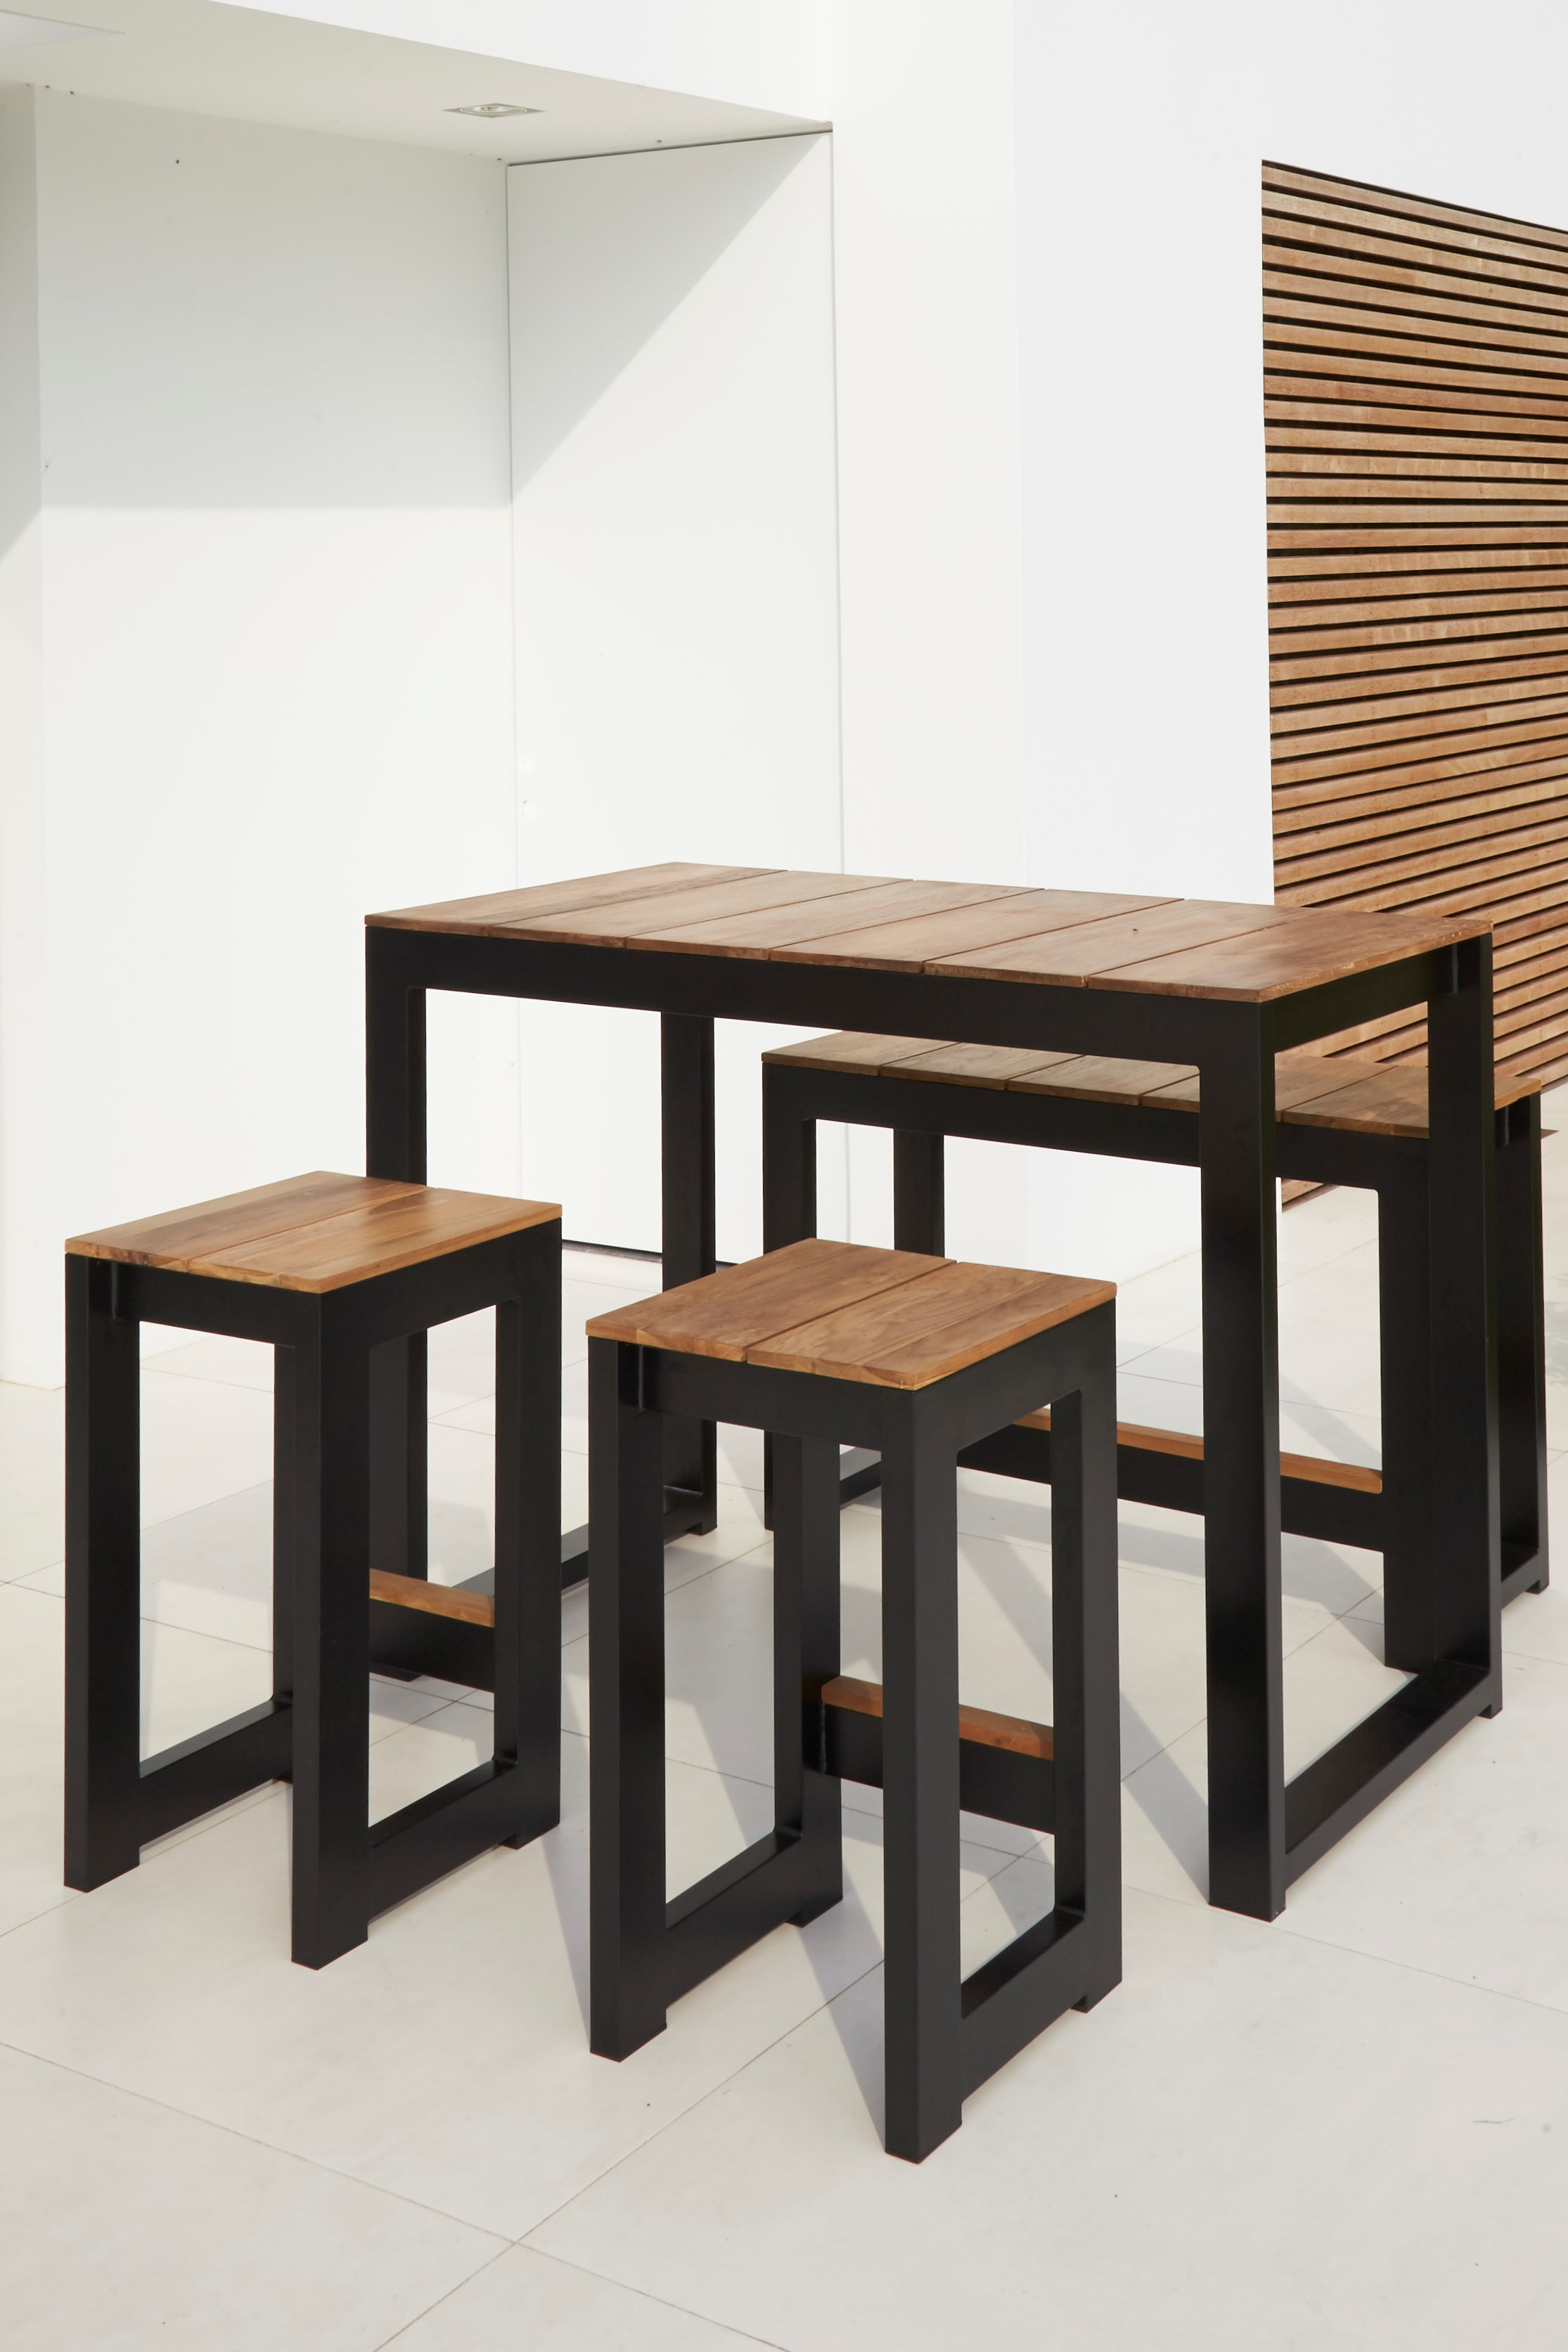 Table And Bar Stools Modern White Black Aluminum Teak Bar Stools Table Contract Hotel